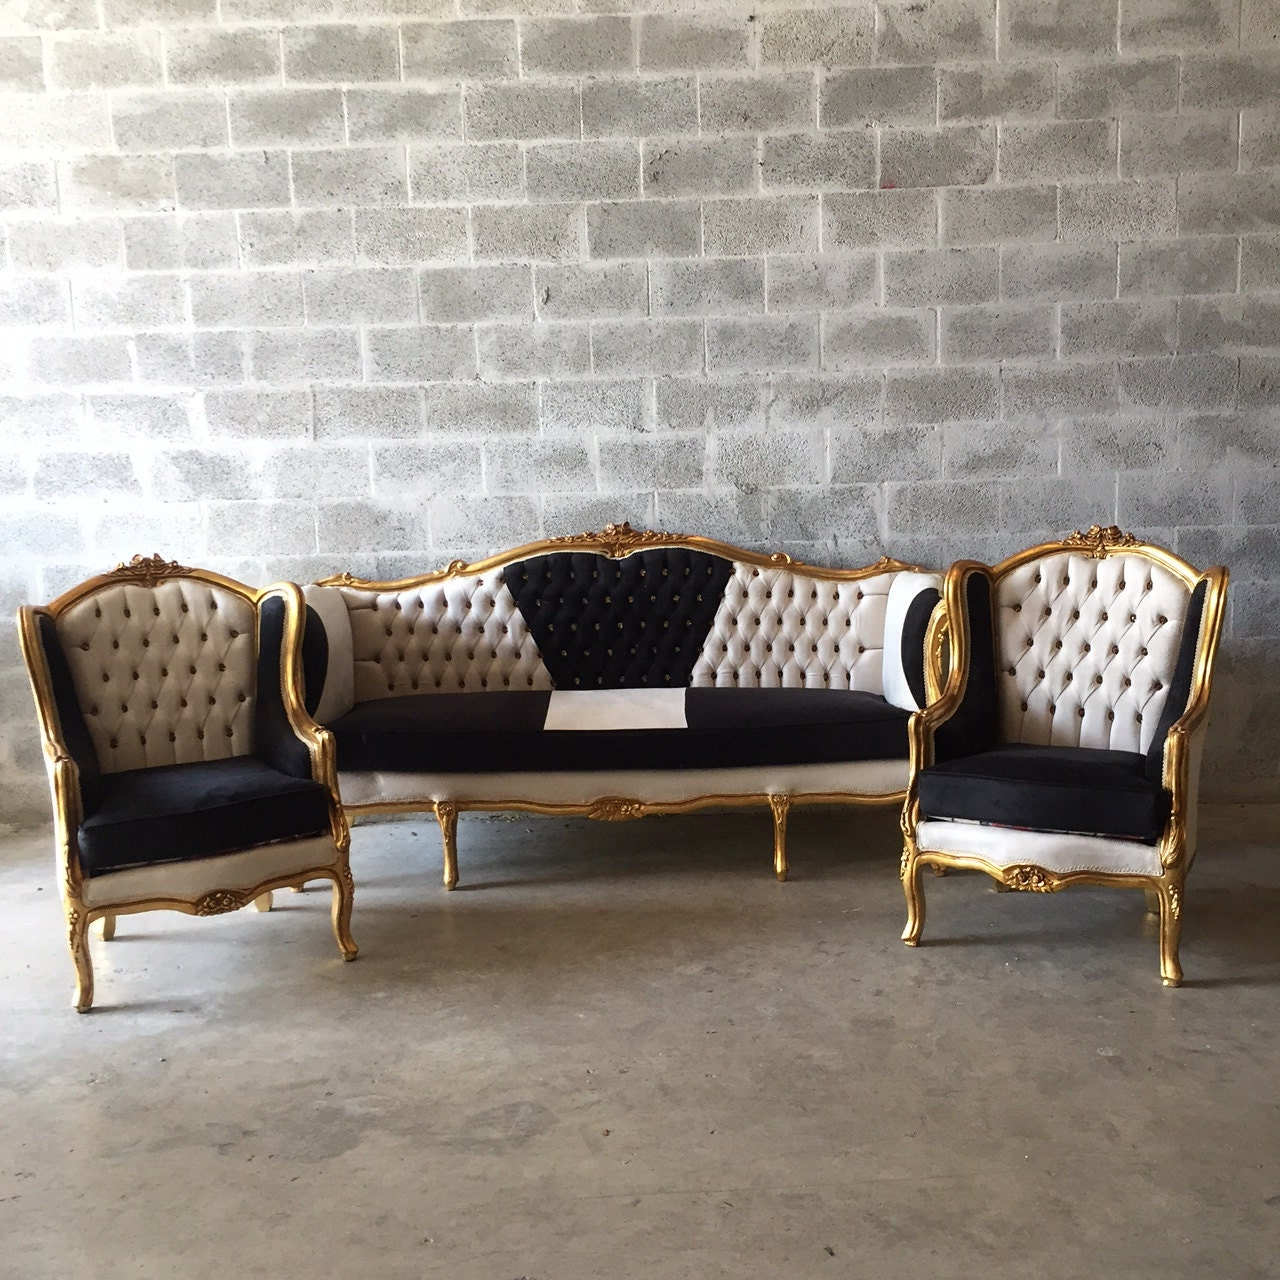 Pics photos rococo style chair sofa rococo - Baroque Tufted Settee Furniture Italian Antique Sofa Refinished Gold Leaf Reupholster Black Velvet Champagne Tufted French